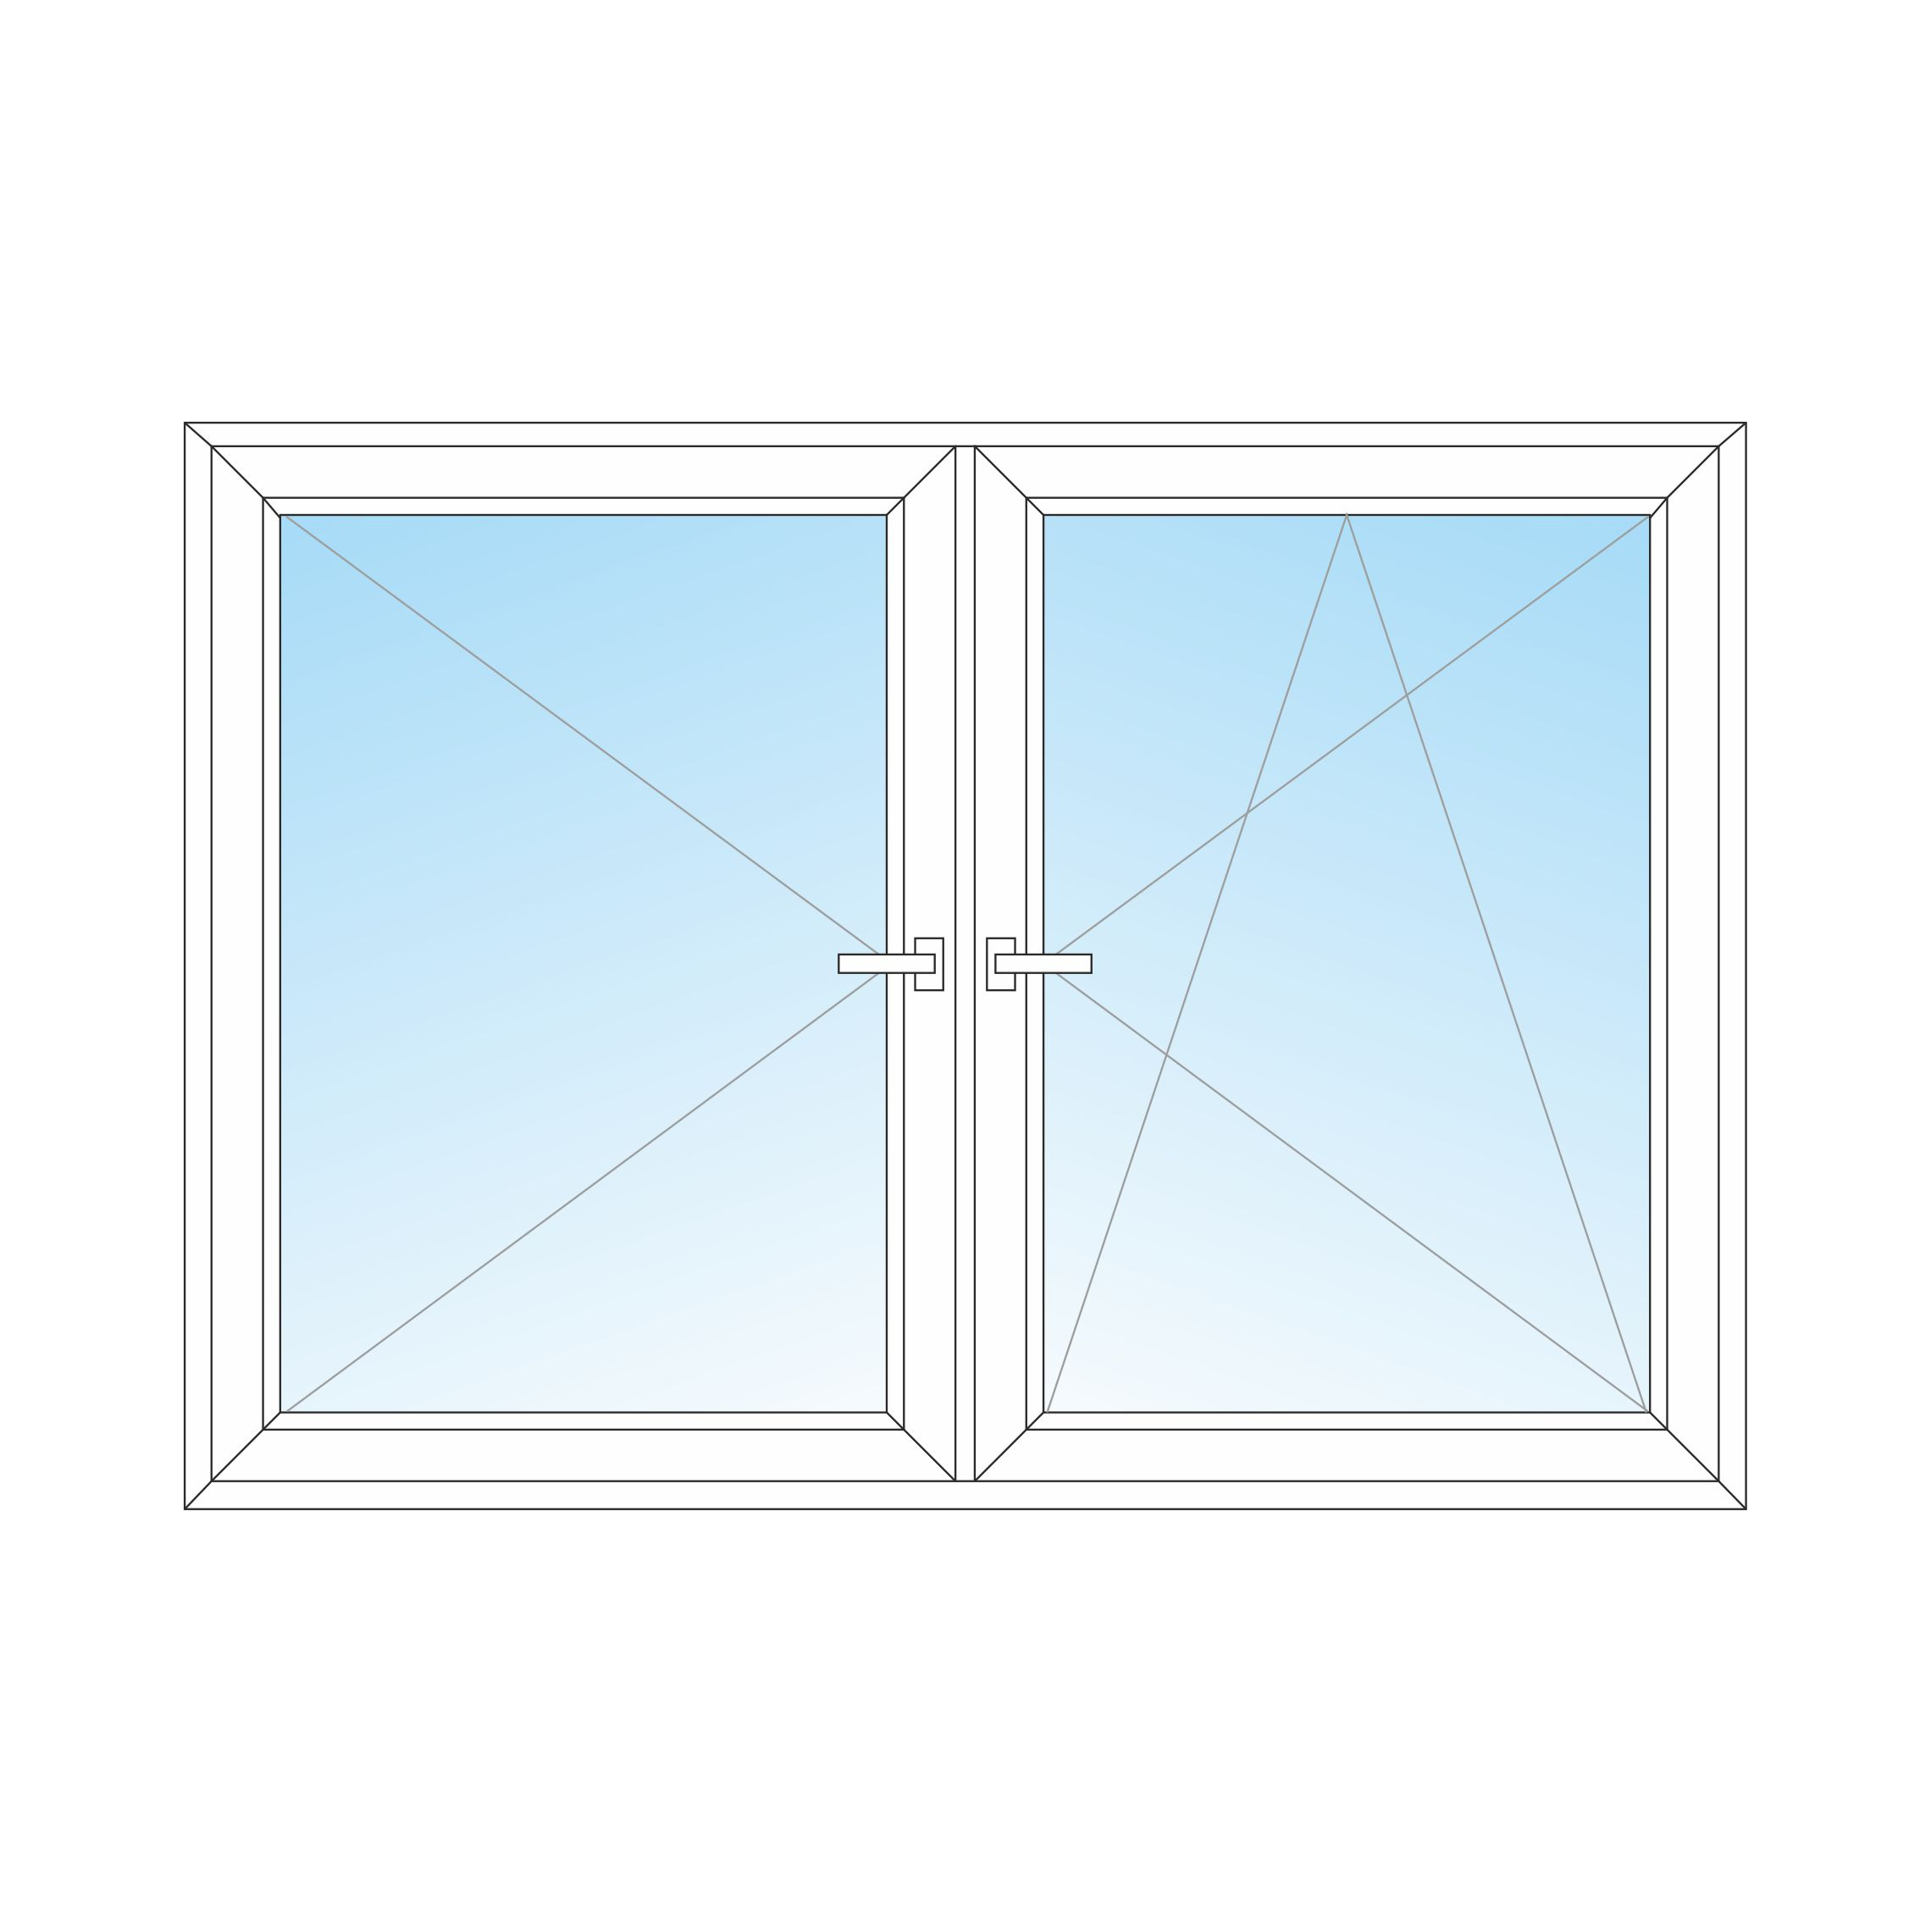 Plastic pvc window prices price calculator r gas logi for Acrylic windows cost